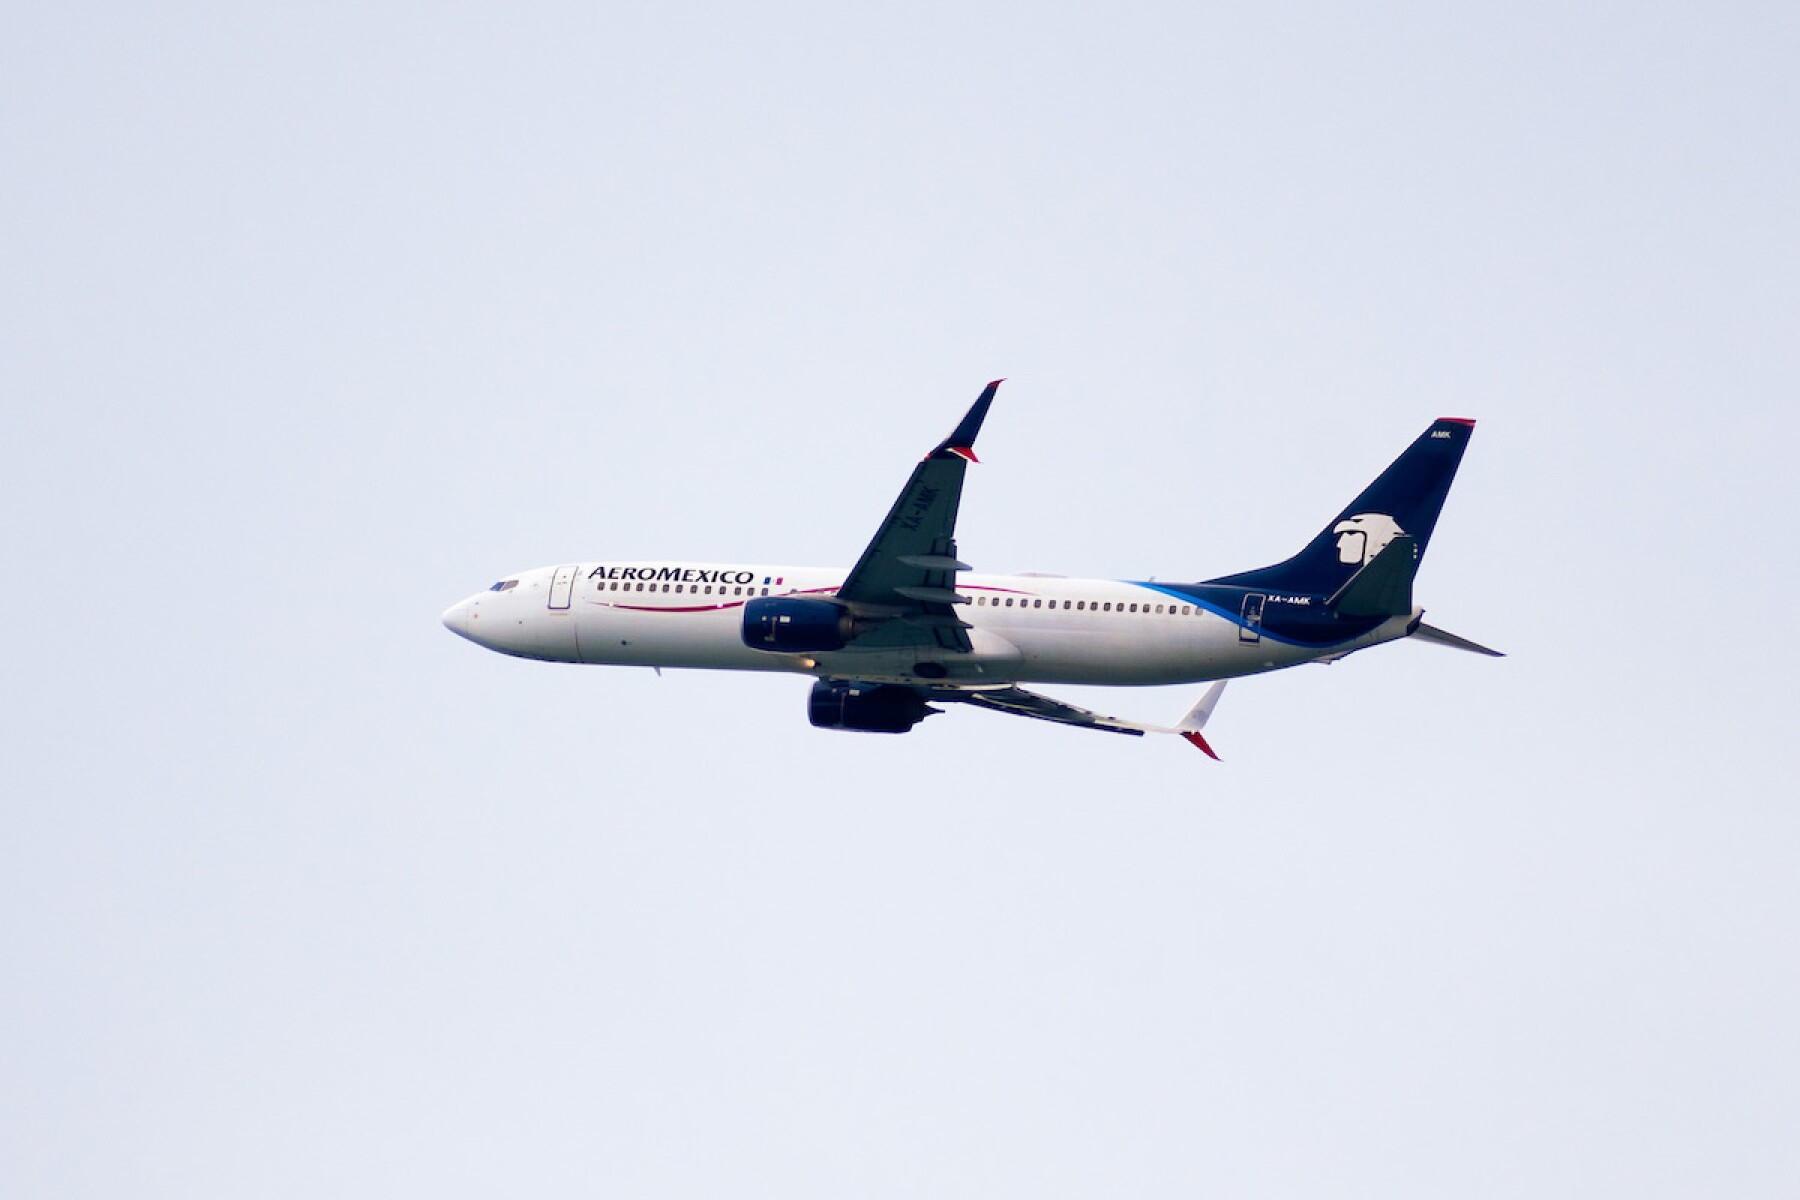 Aeromexico aircraft mid flight